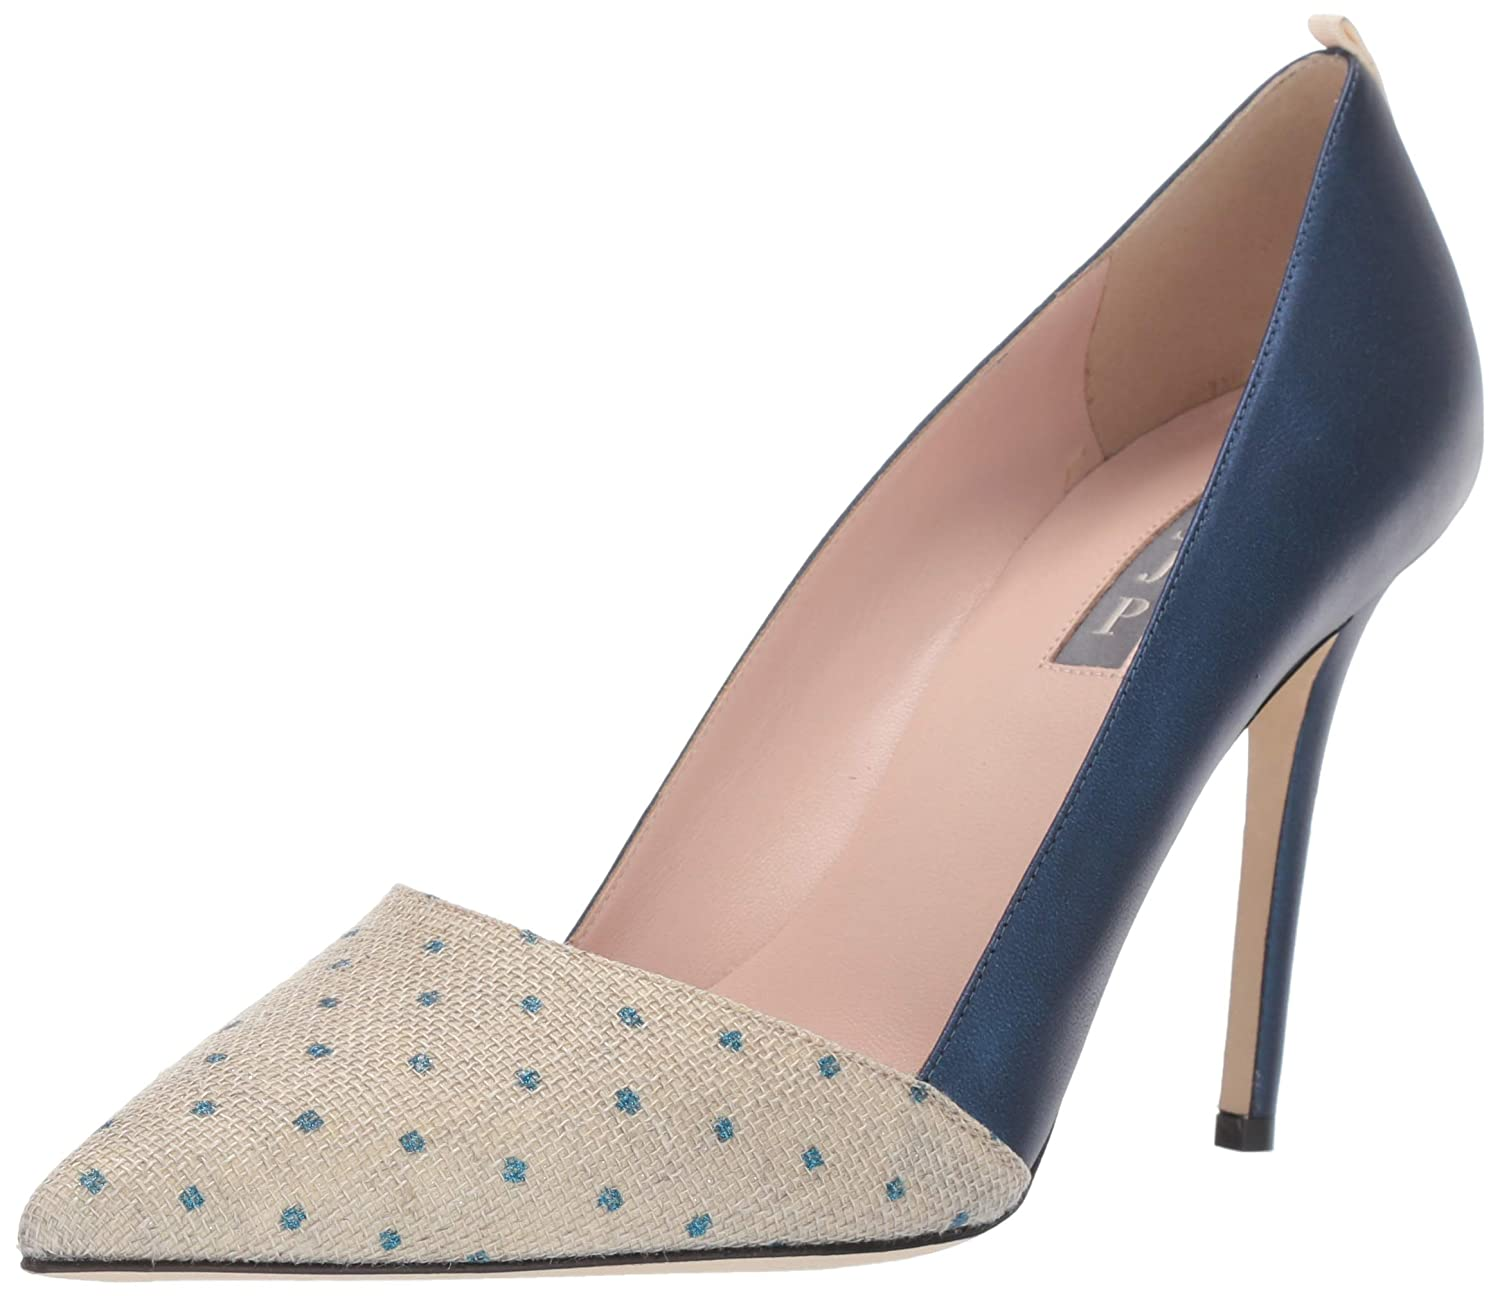 Infinity bluee SJP by Sarah Jessica Parker Womens Rampling Pointed Toe Classic Dress Pump